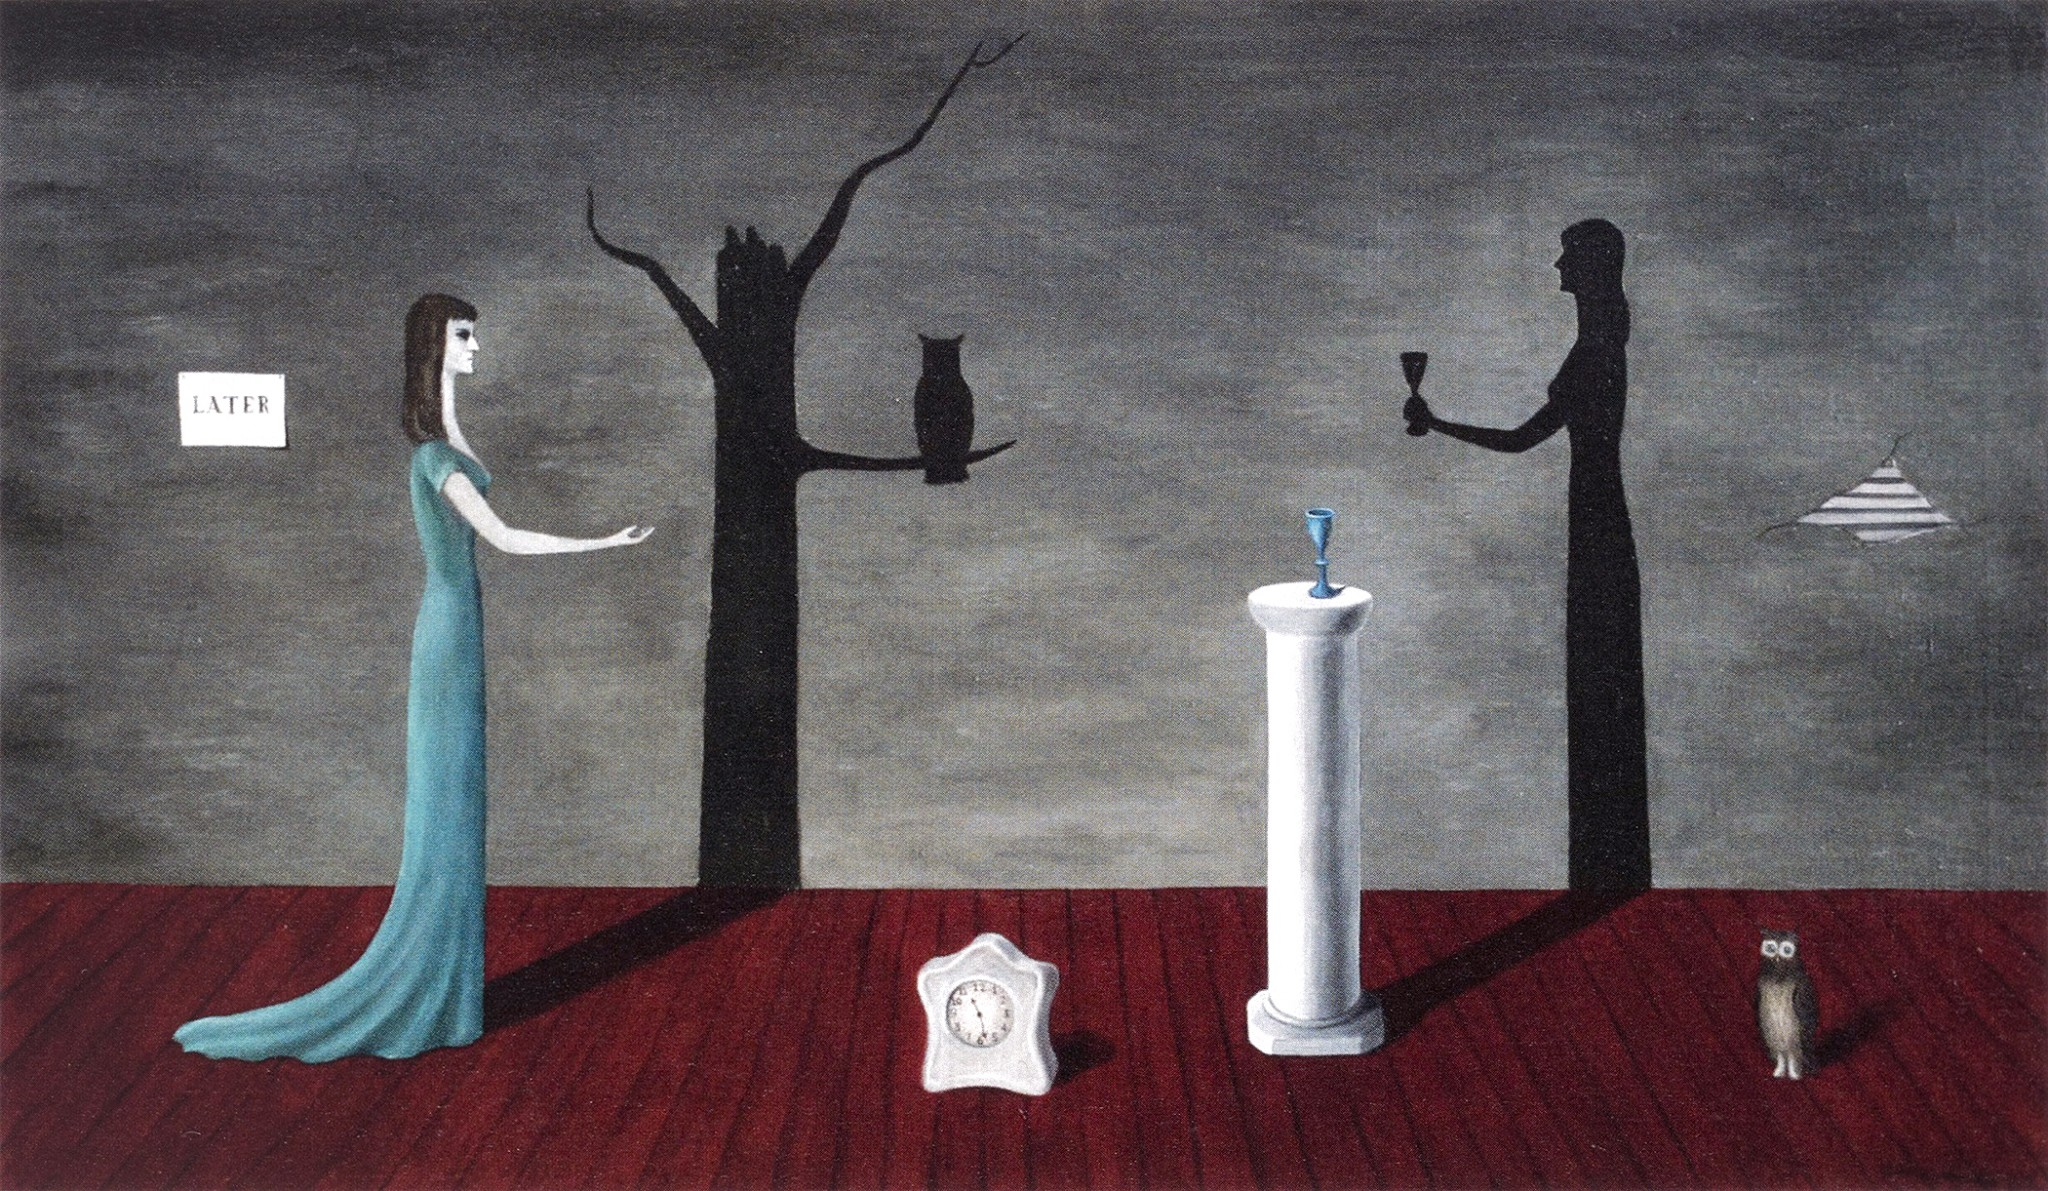 """Gertrude Abercrombie's oil on canvas, """"Strange Shadows (Shadow and Substance) is among the works featured in """"Supernatural America: The Paranormal in American Art,"""" on exhibit at Toledo Museum of Art June 12-Sept. 5. (Photo: © James Prinz Photography, Chicago)"""